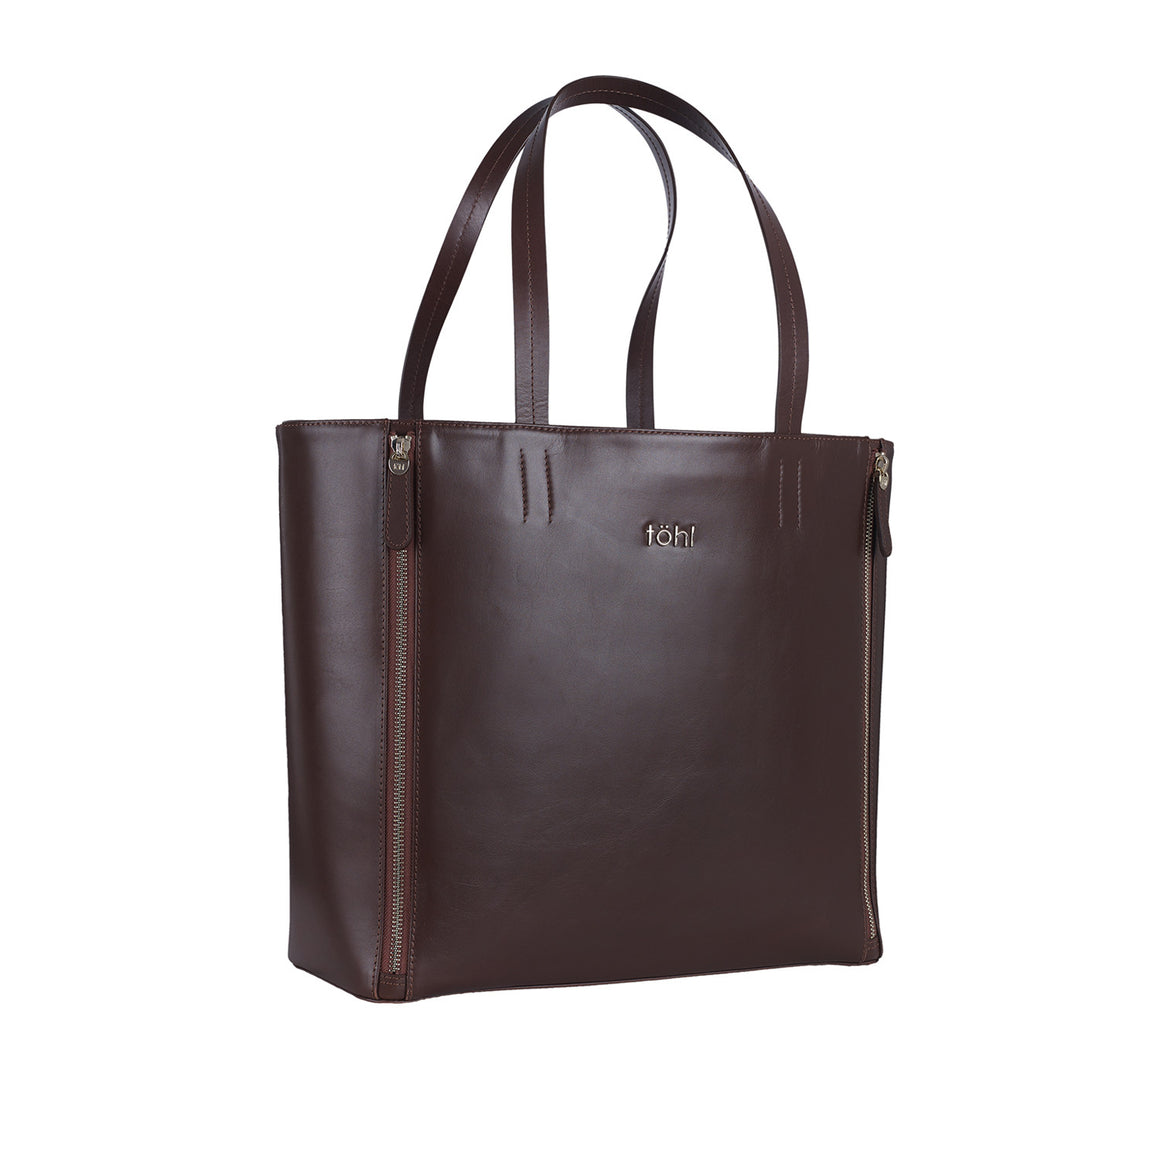 TT 0006 - TOHL RIVINGTON WOMEN'S TOTE BAG - CHOCO